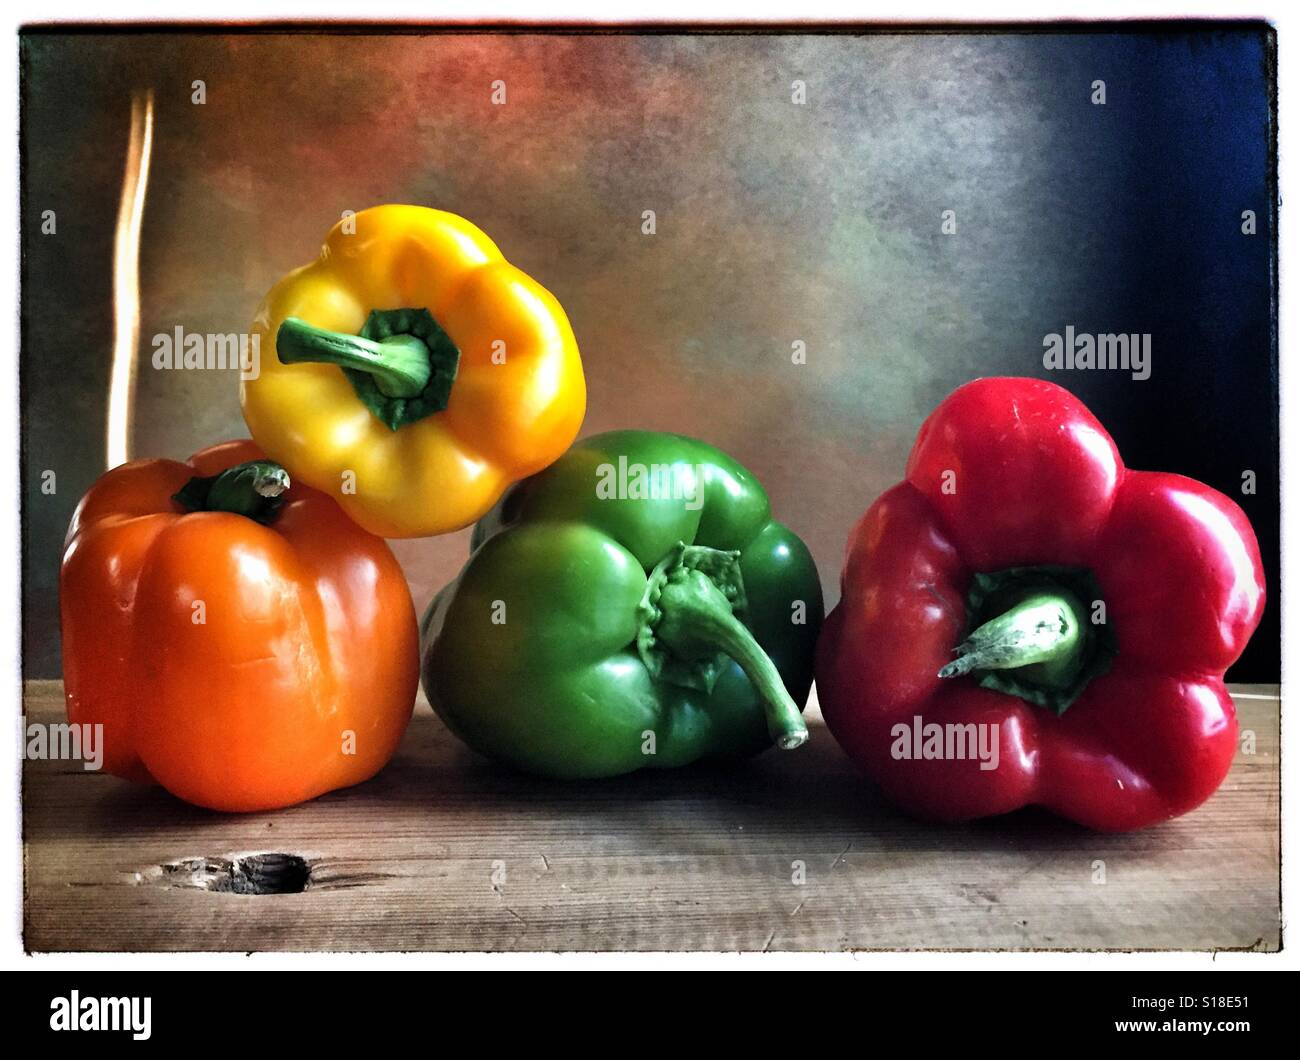 Peppers - Stock Image